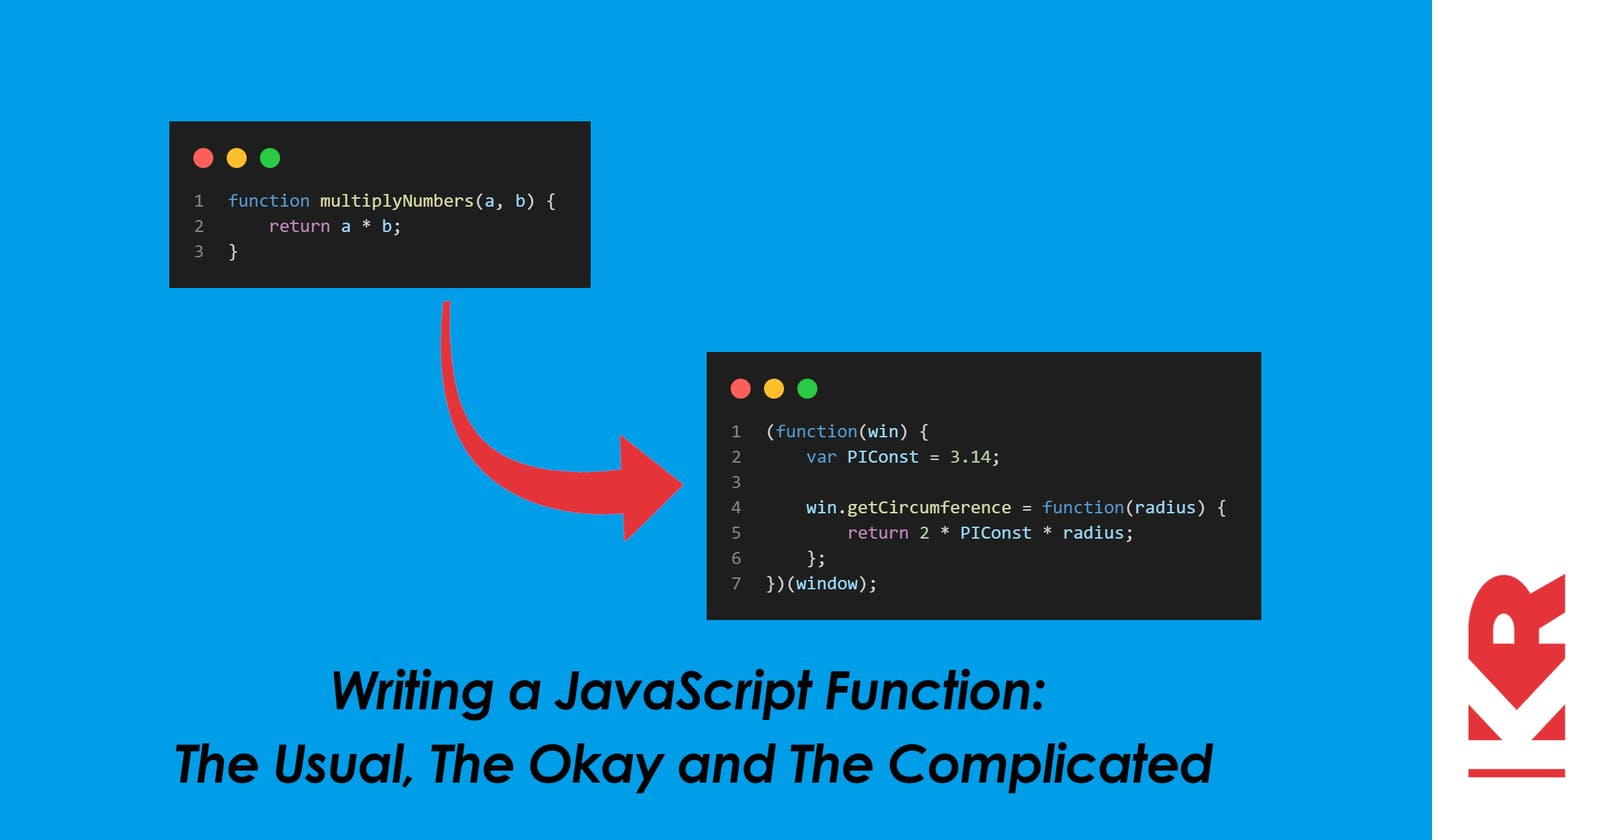 Writing a JavaScript Function: The Usual, The Okay and The Complicated